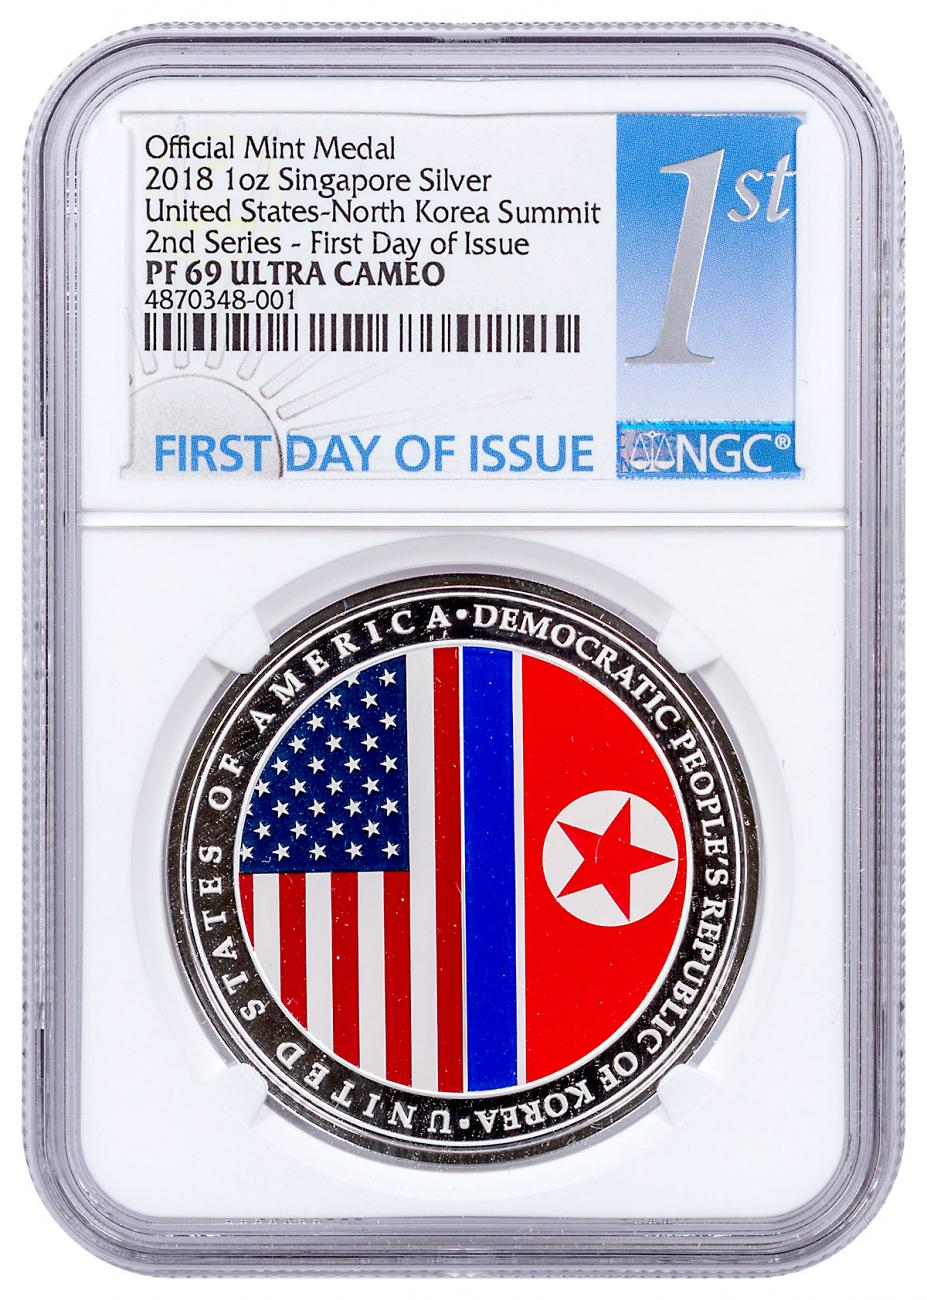 2018 Singapore United States - North Korea Summit High Relief 1 oz Silver Proof Medal NGC PF69 UC FDI